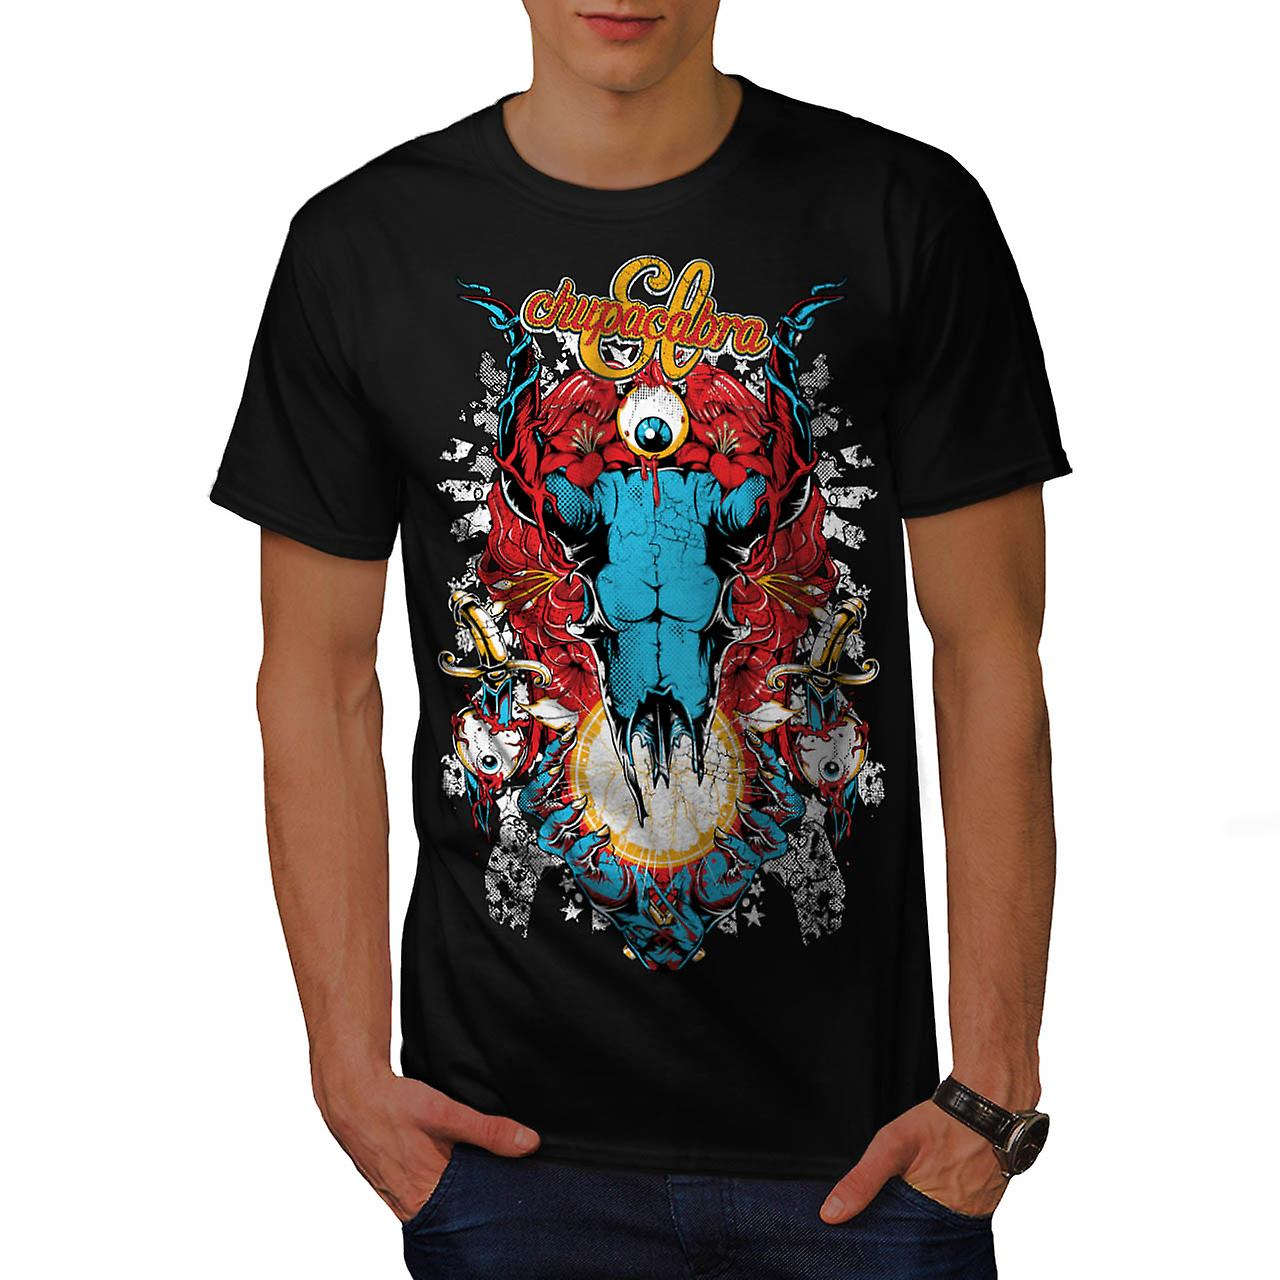 Chupacabra Demon fan kung Satan män svart T-shirt | Wellcoda